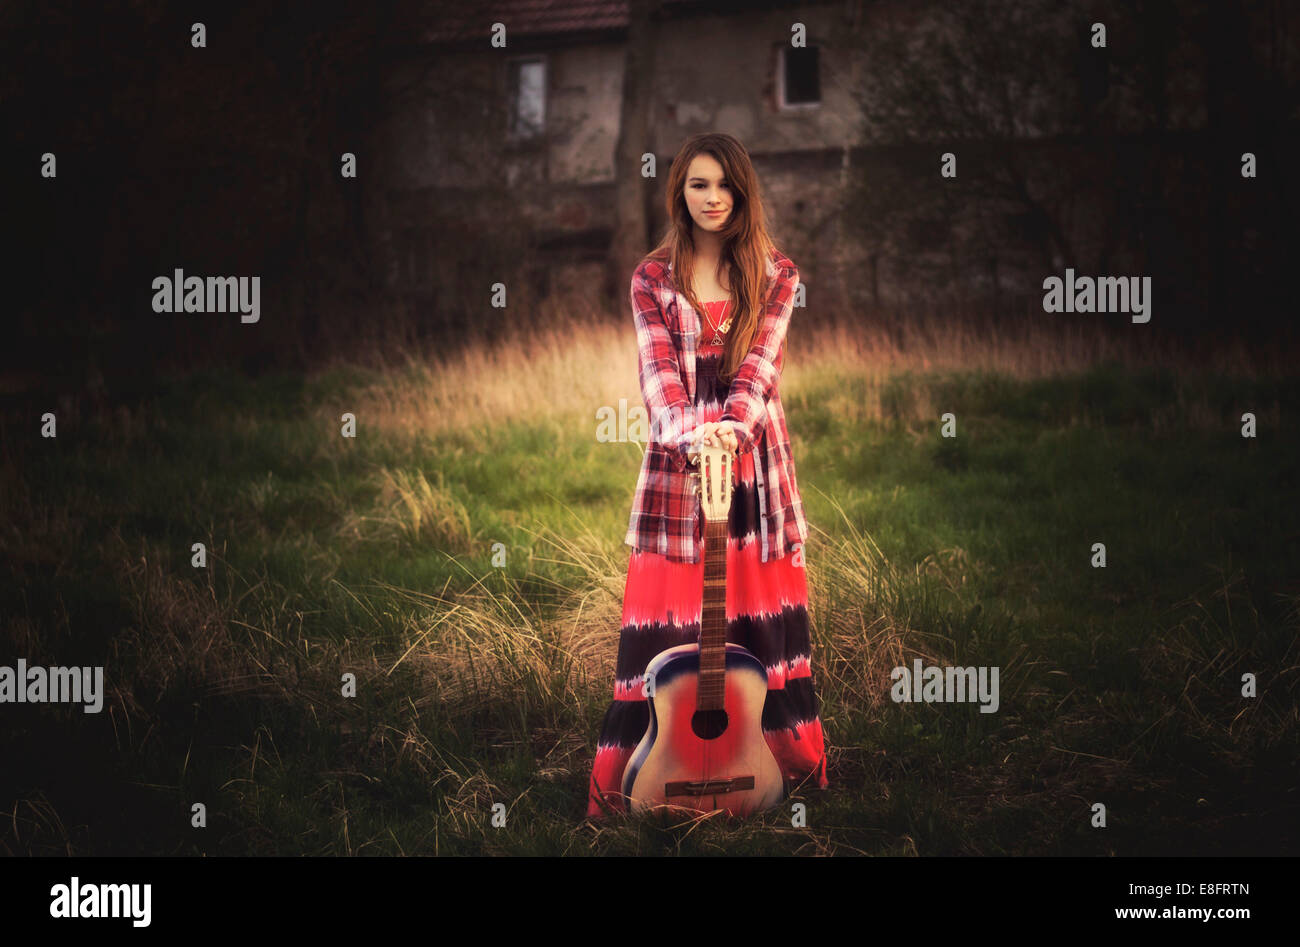 Girl standing with guitar - Stock Image